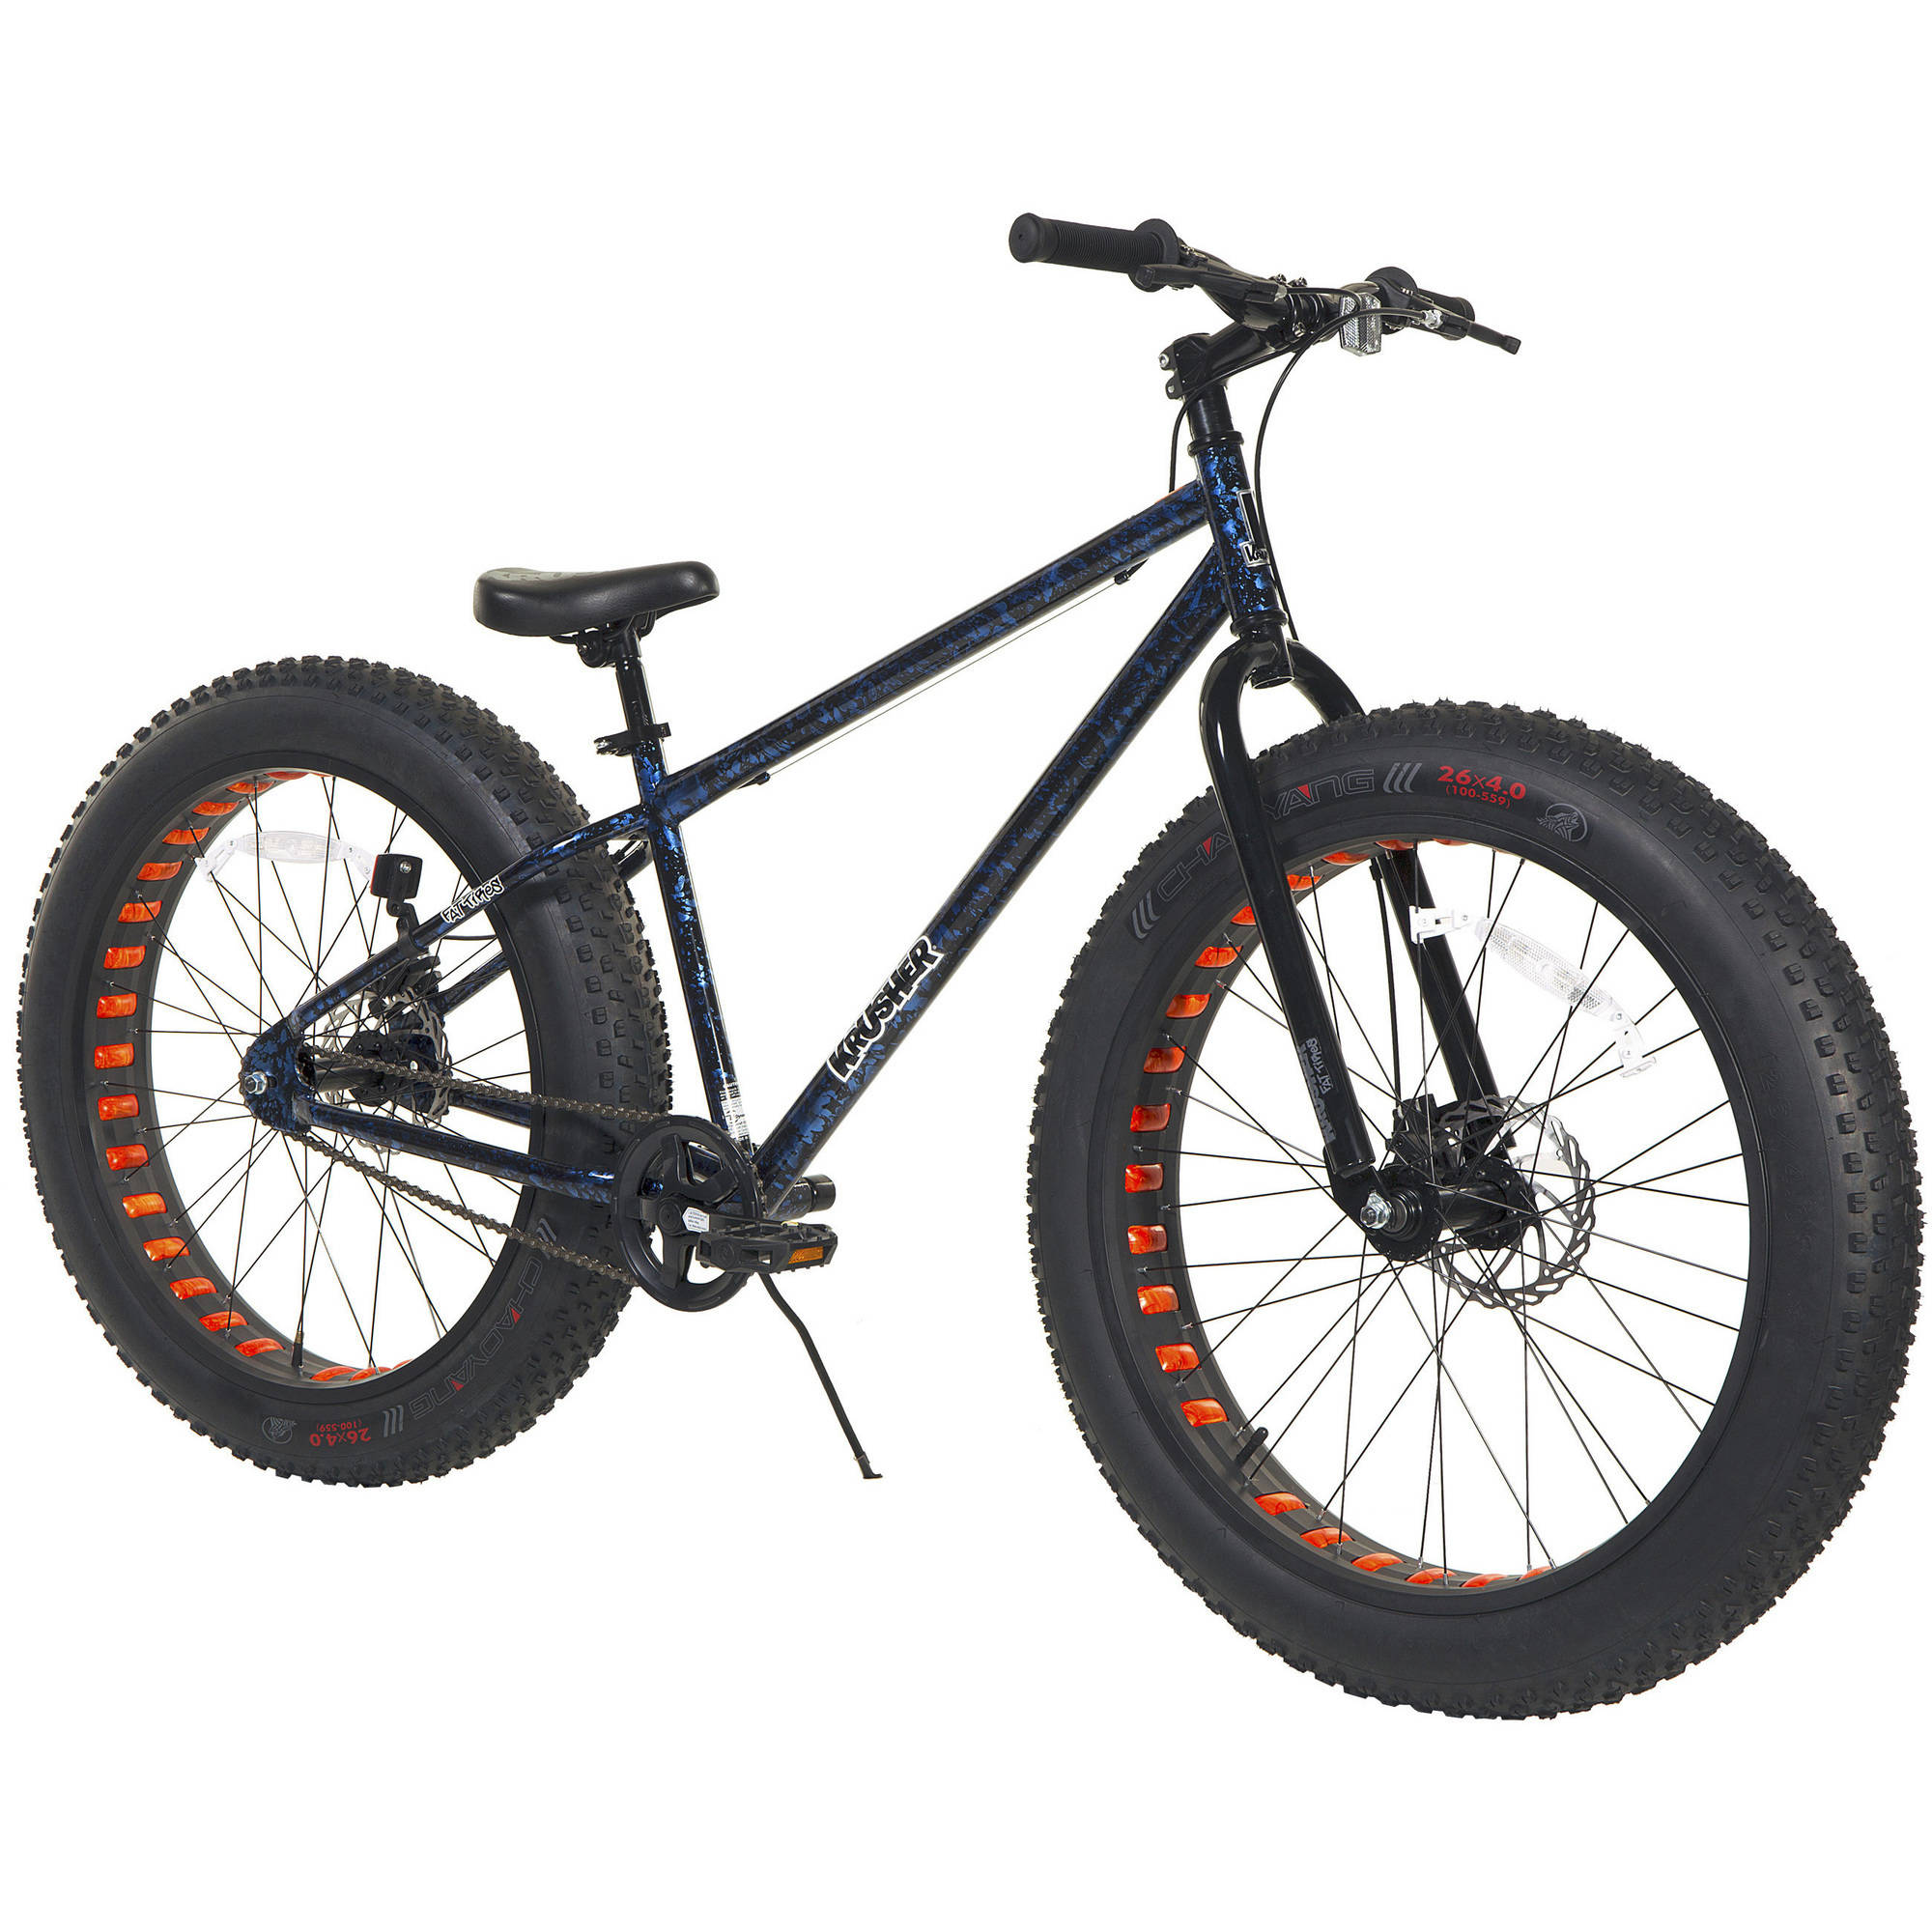 "Dynacraft 26"" Mens' Krusher Fat Tire Bike by Dynacraft BSC"